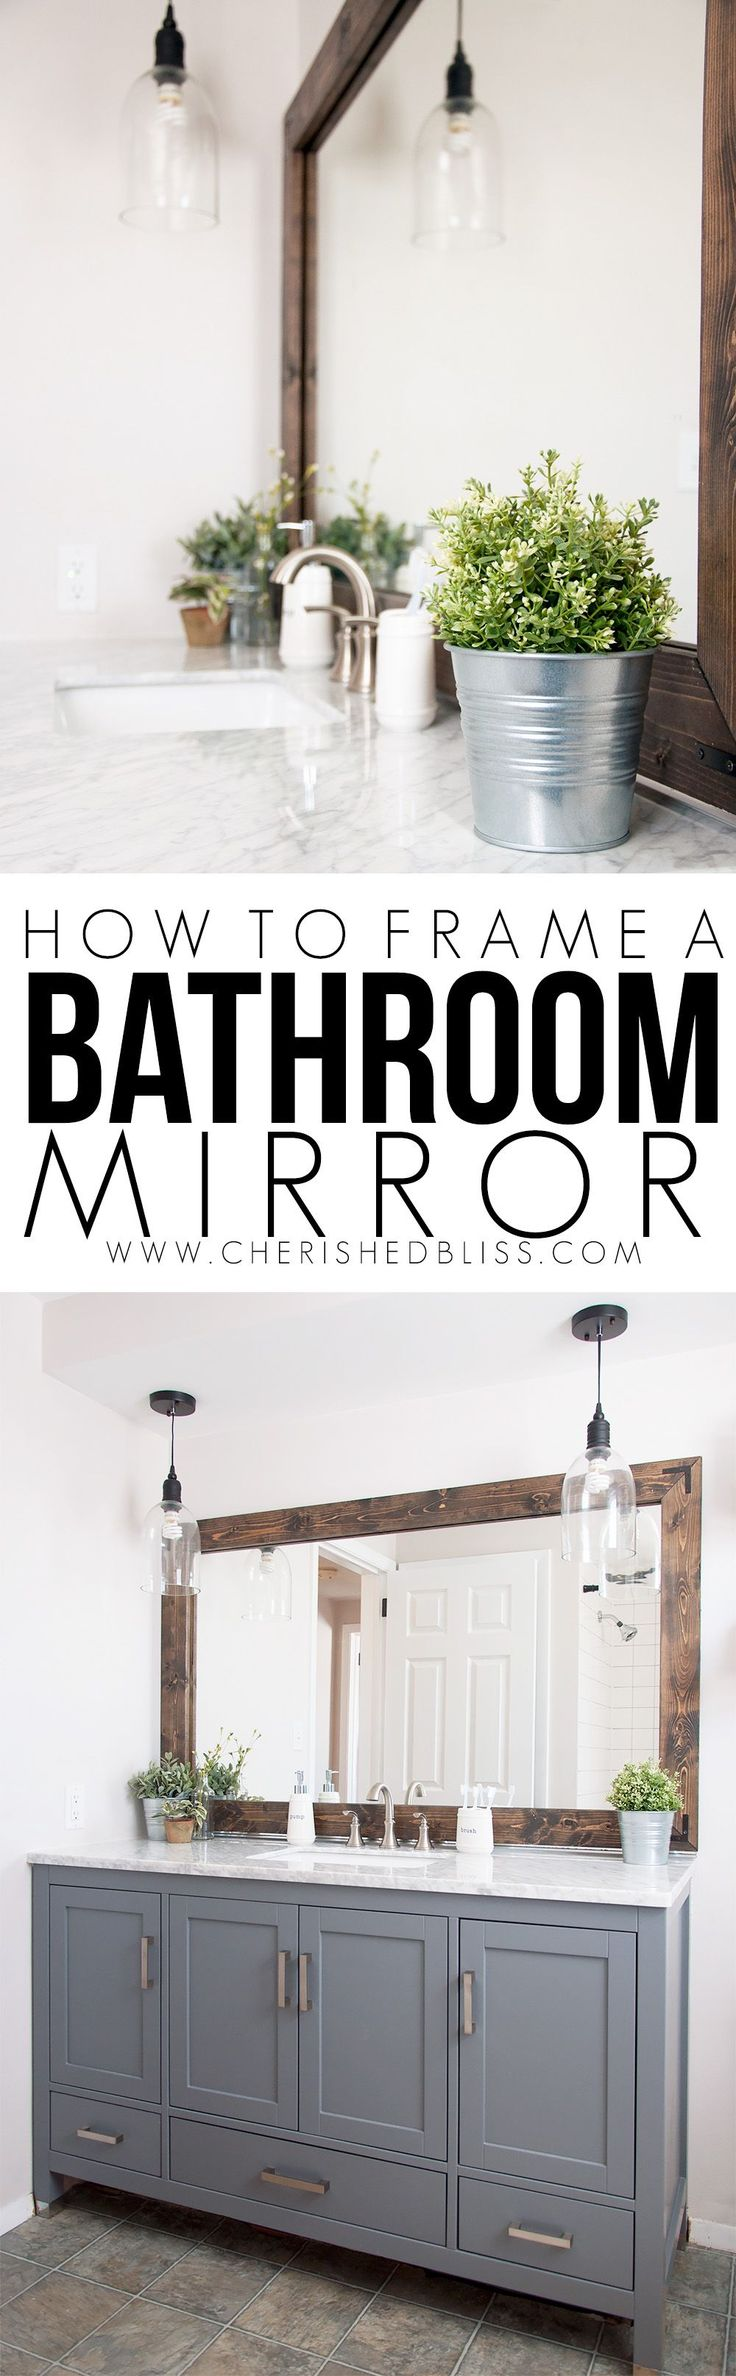 Bathroom Mirrors Wood Frame best 20+ frame bathroom mirrors ideas on pinterest | framed